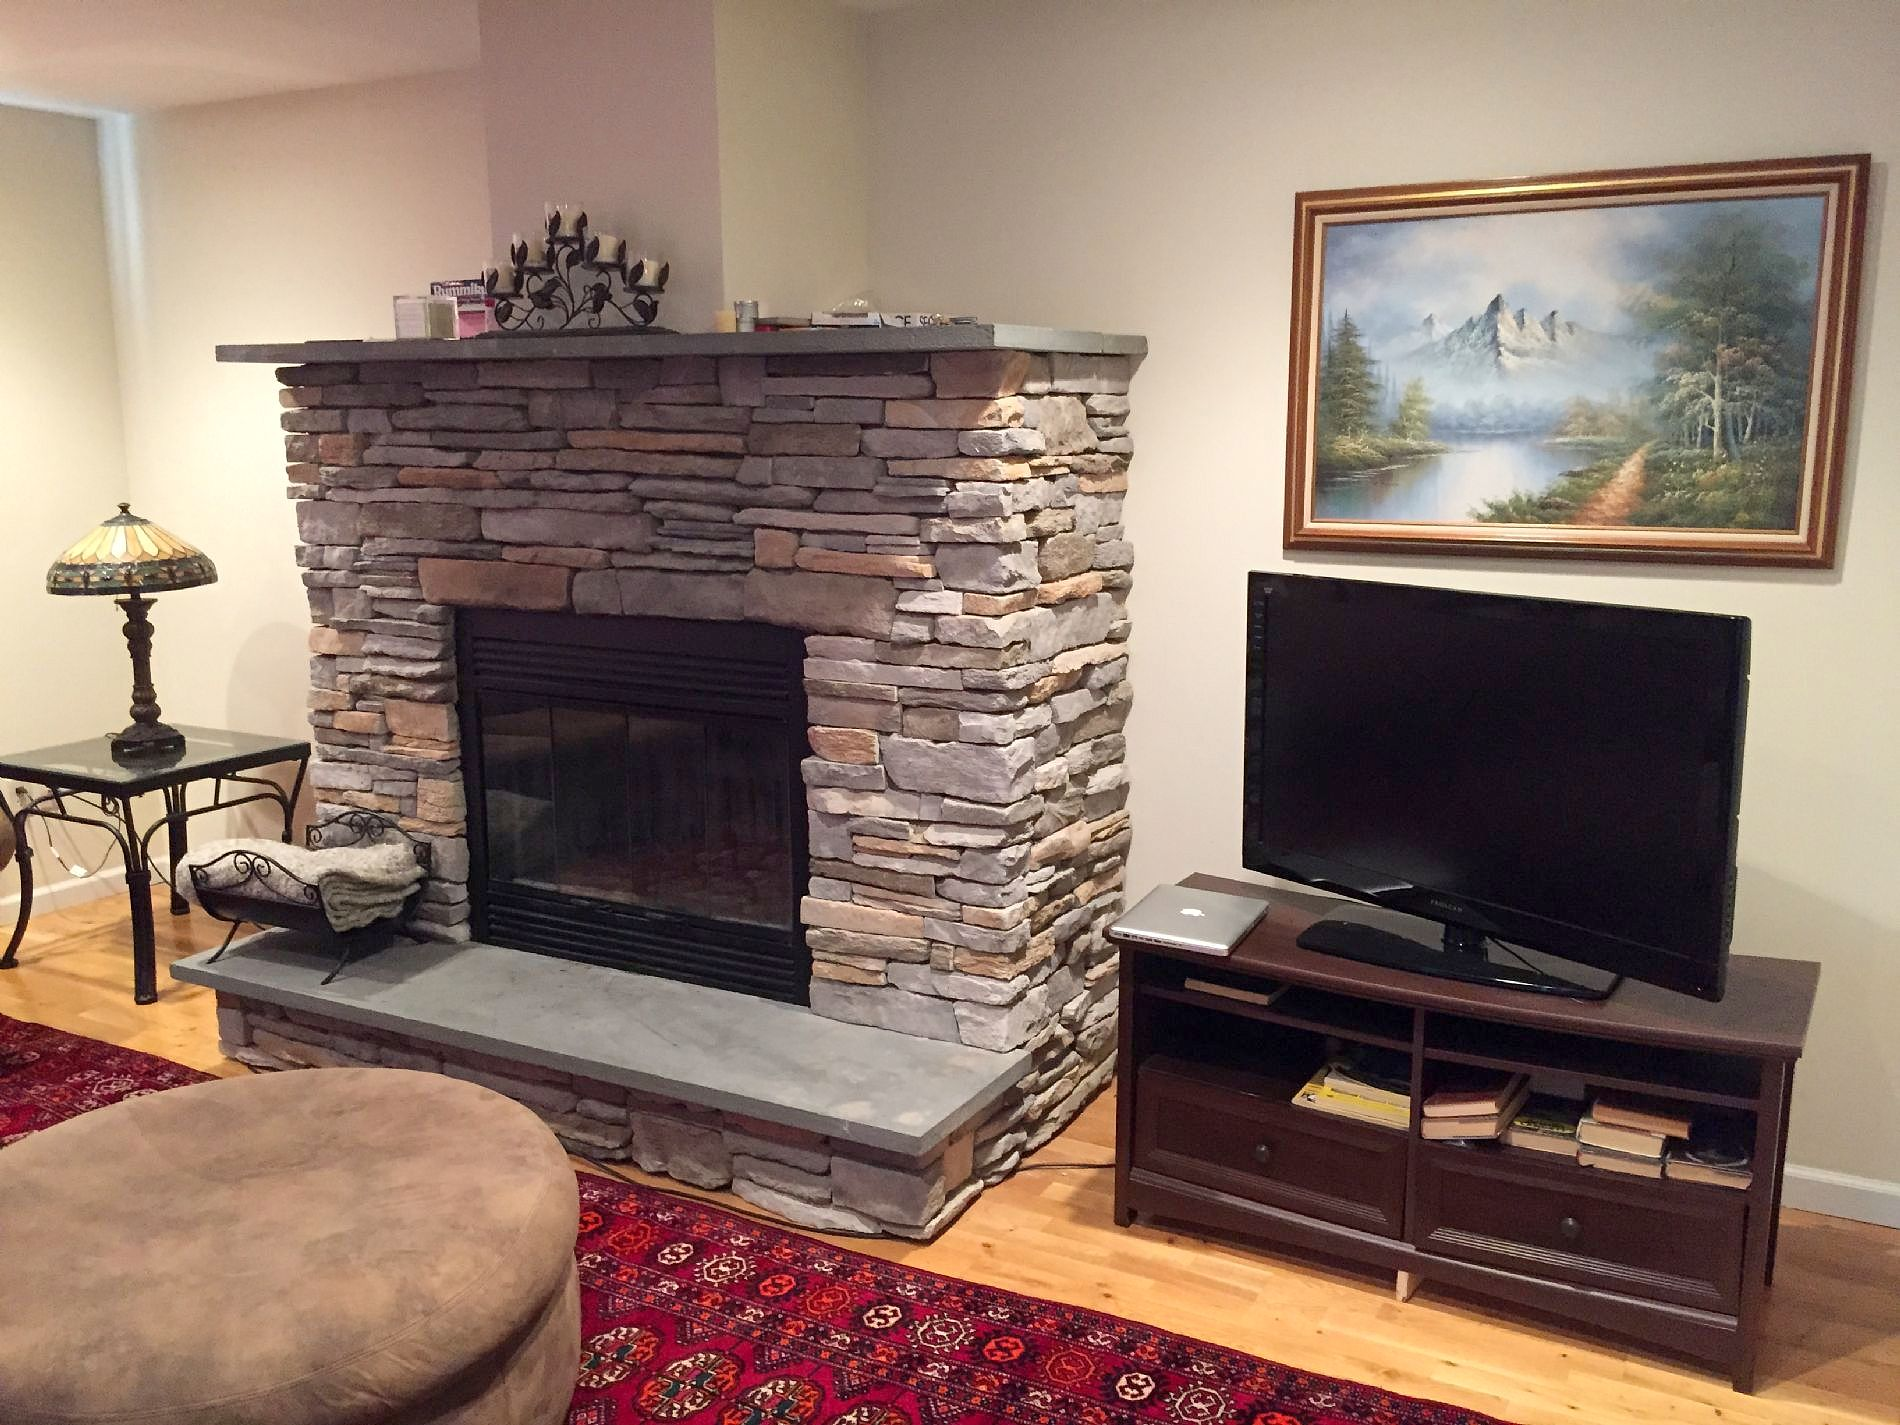 4 Bedrooms / 3.5 Bathrooms - Est. $2,395.00 / Month* for rent in Windham, NY